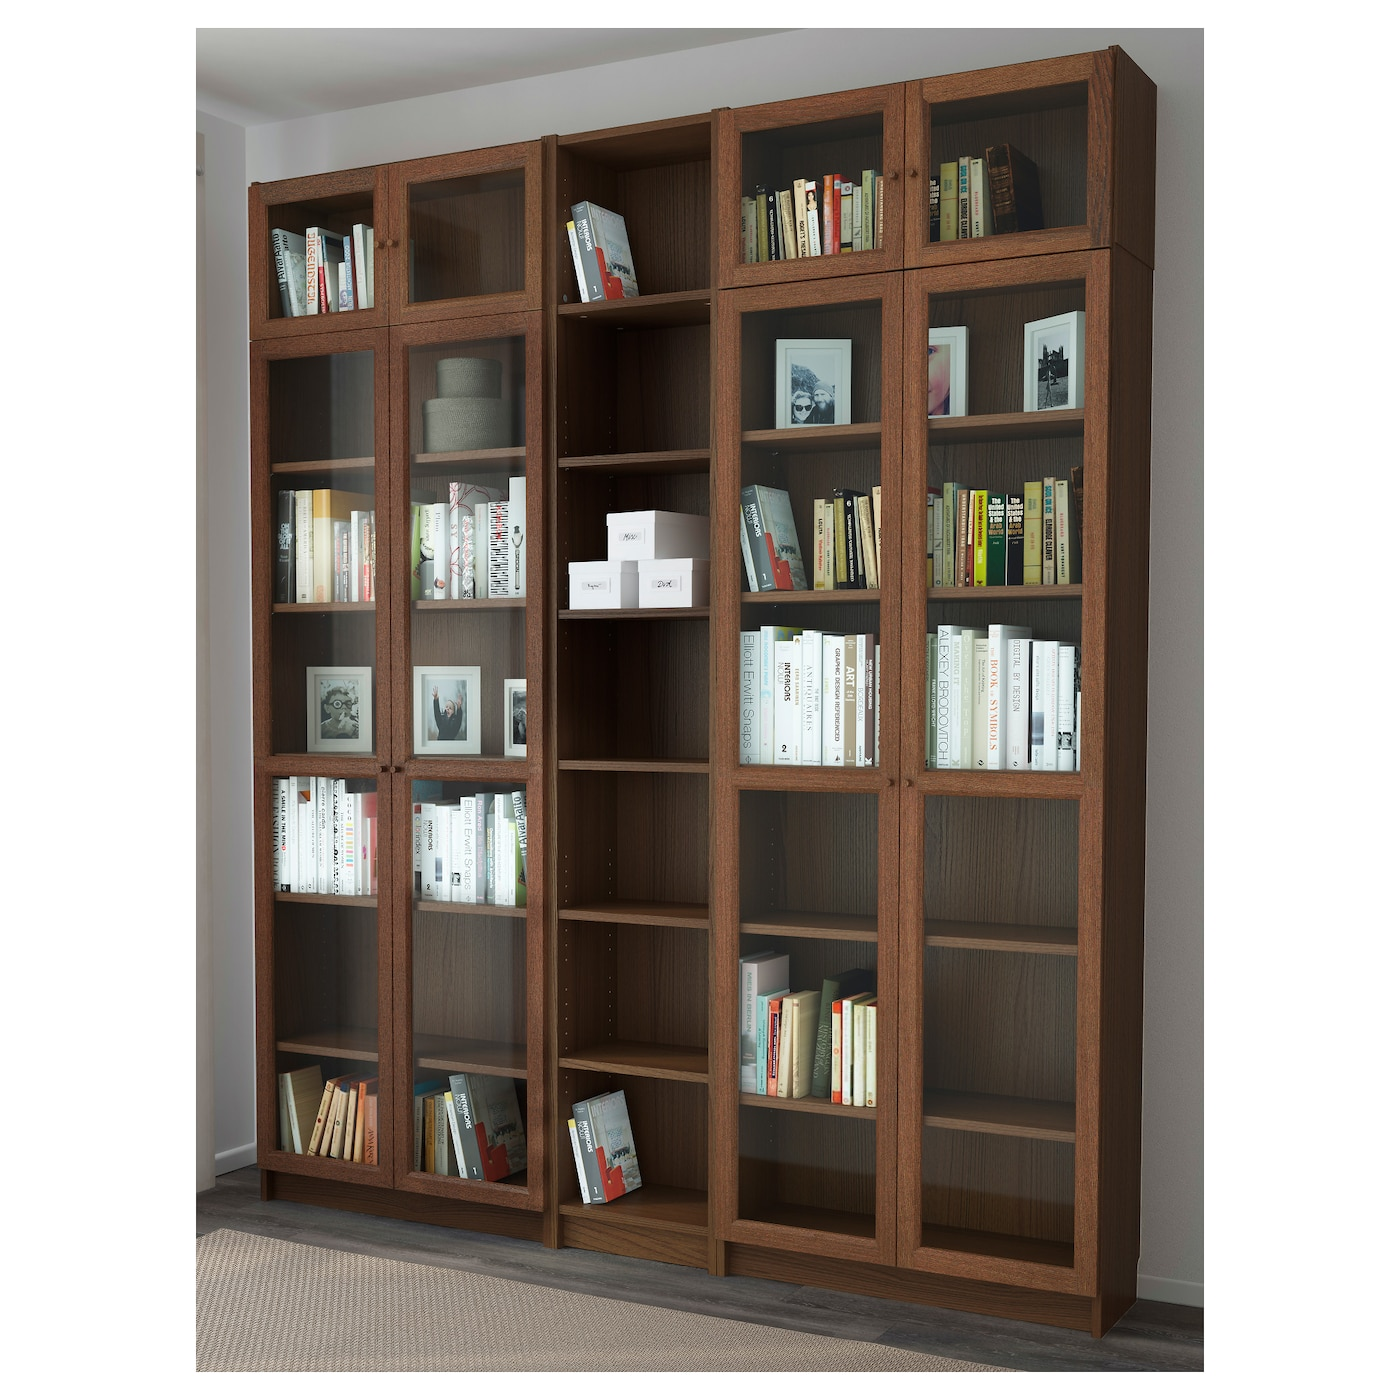 billy oxberg bookcase brown ash veneer 200x237x30 cm ikea. Black Bedroom Furniture Sets. Home Design Ideas